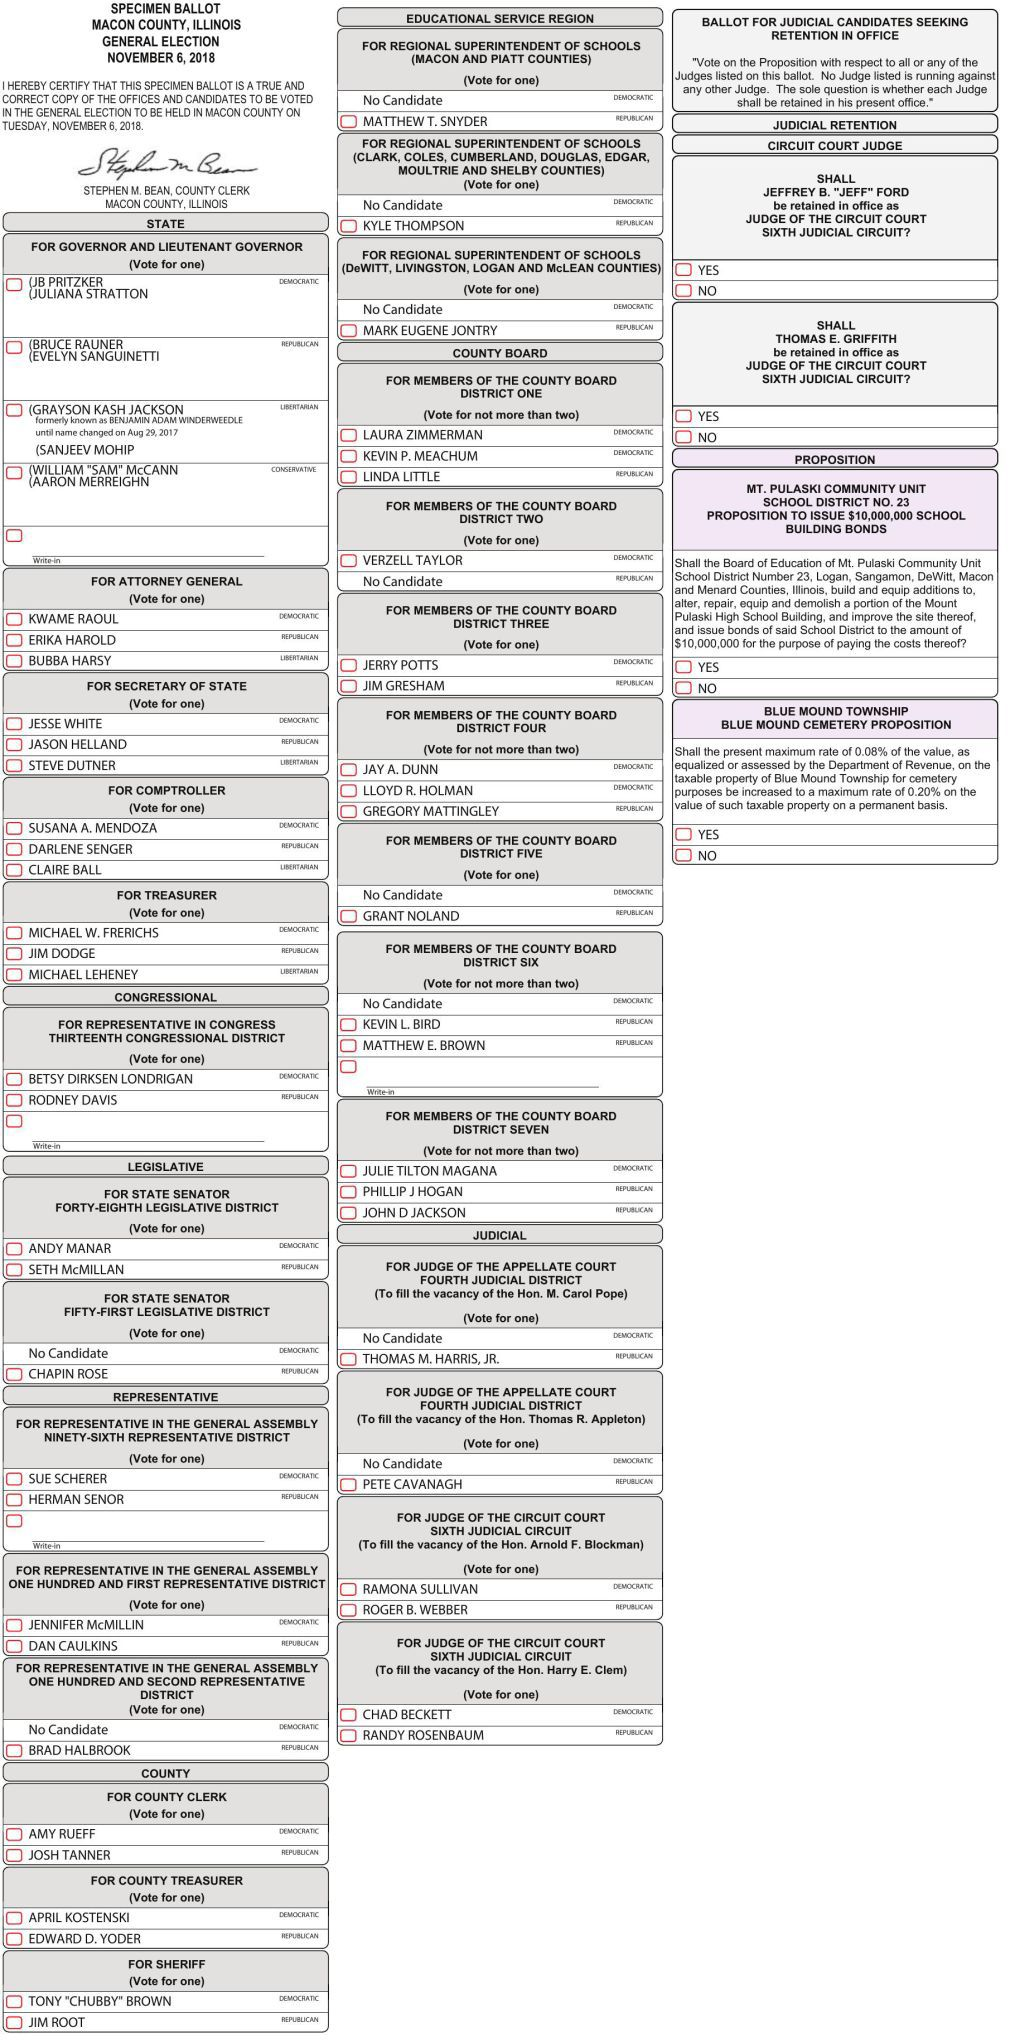 Darien: this is what your ballot will look like in november.